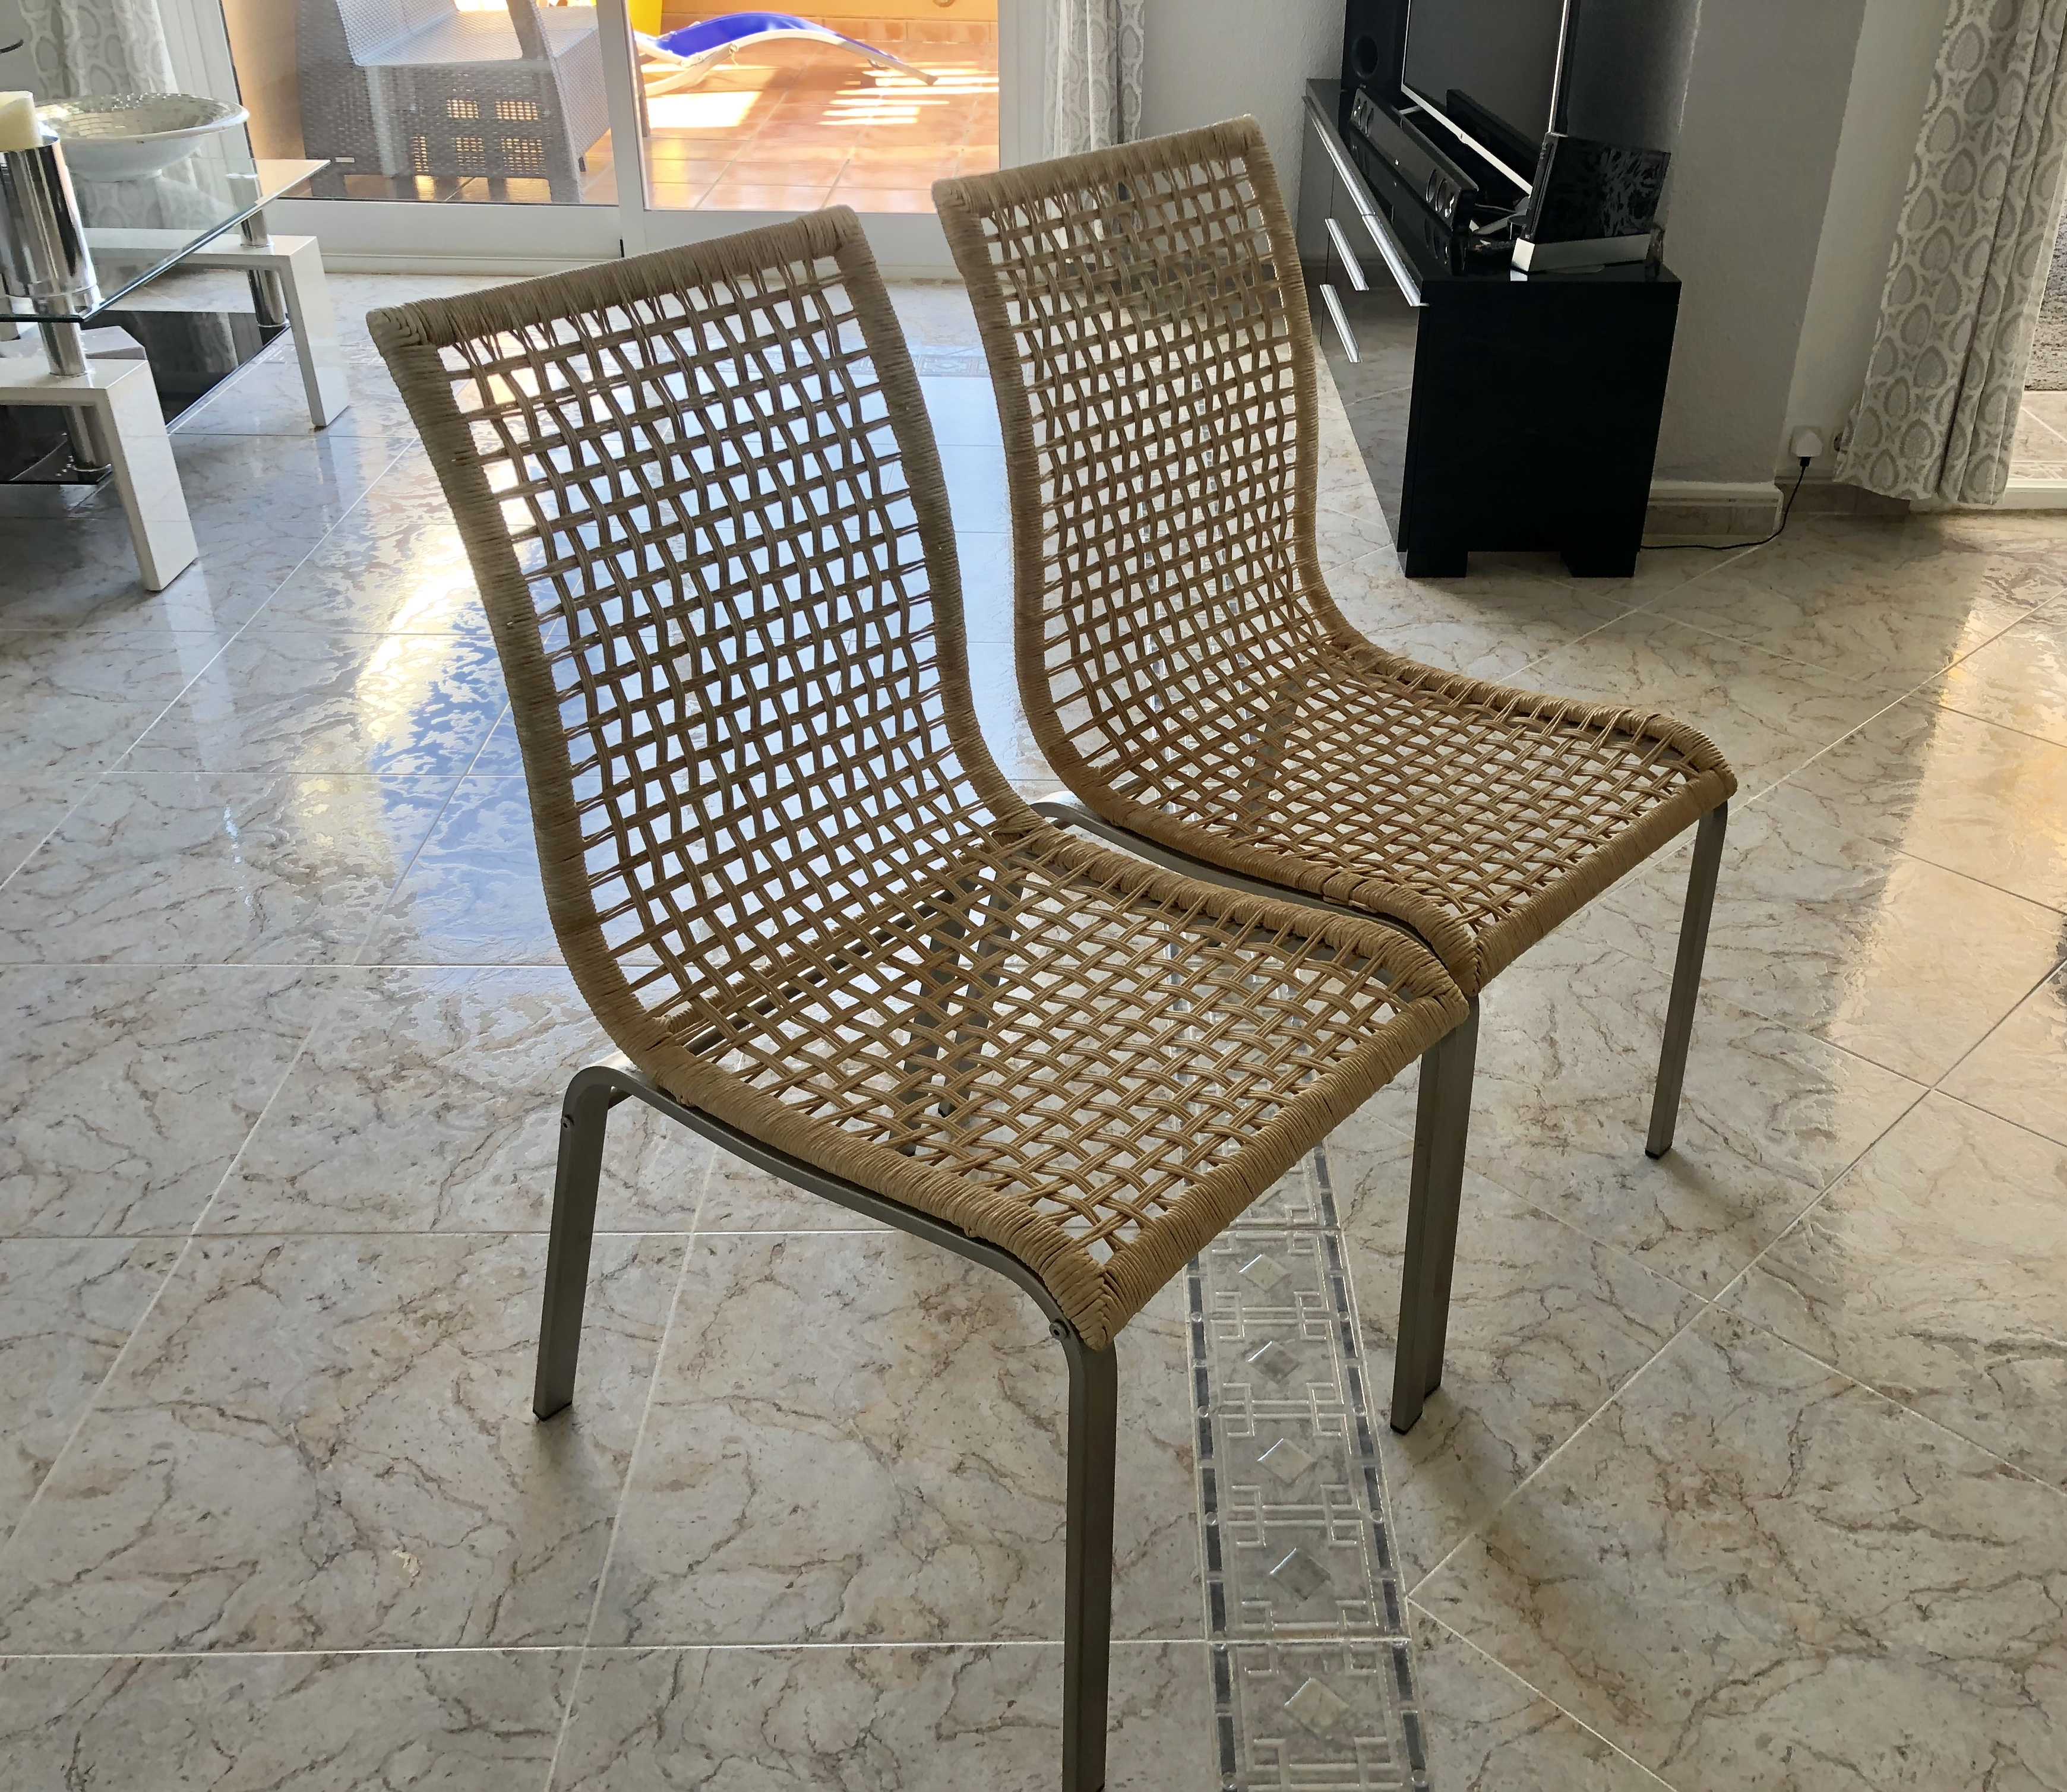 Dining Chairs For Sale Ikea: For Sale: 4 Ikea Dining Chairs